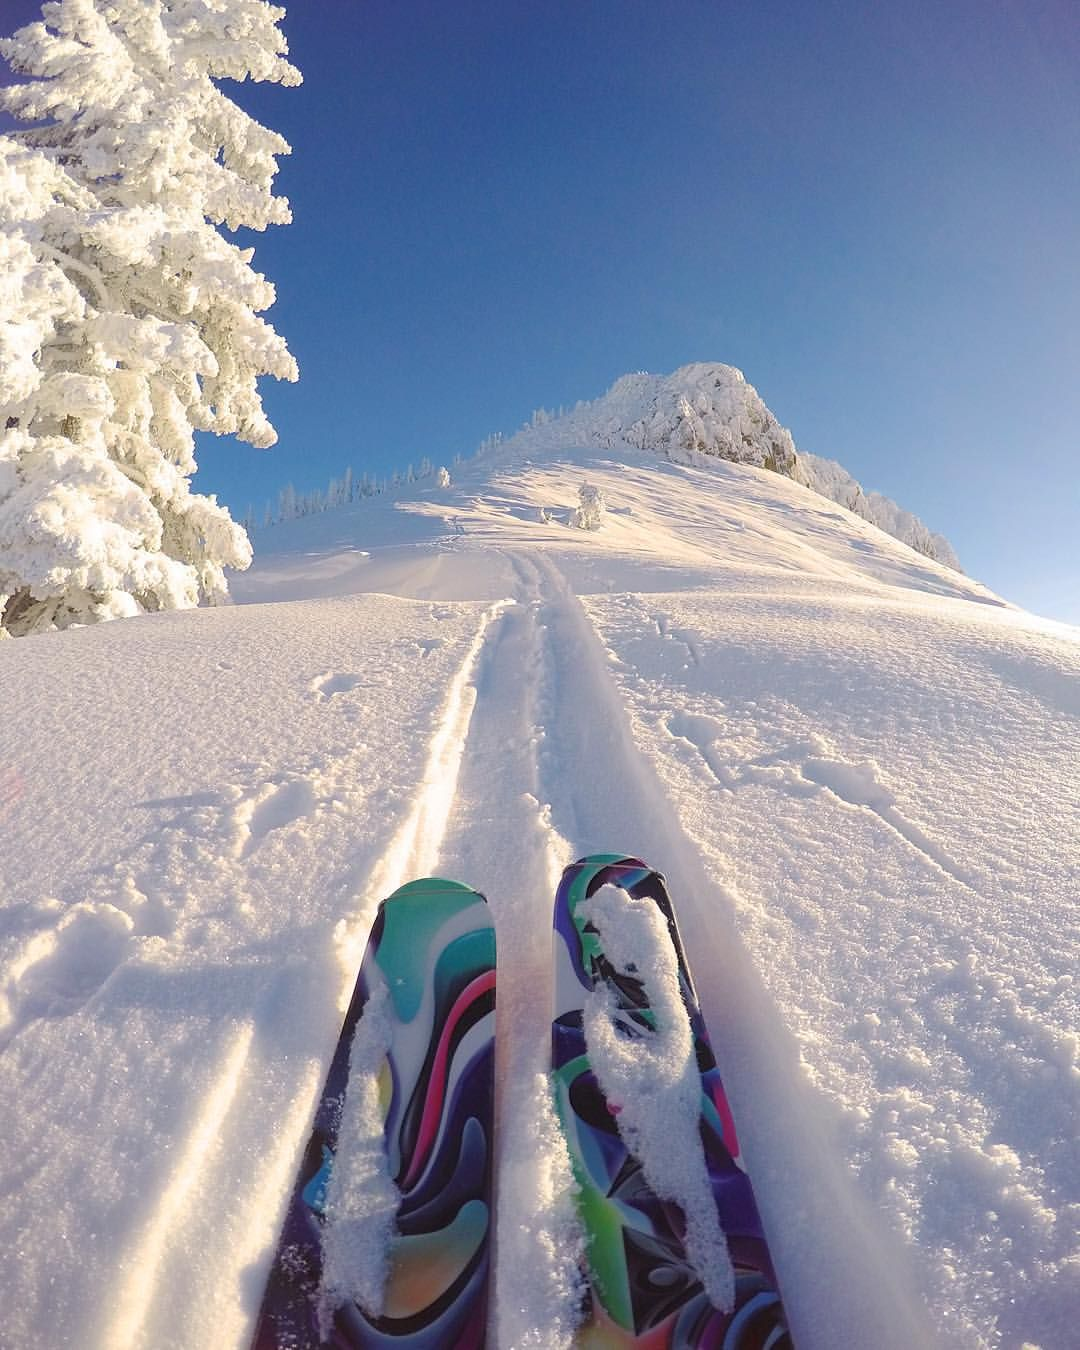 #Skiing #ski #winter Re-pinned by www.avacationrental4me ...